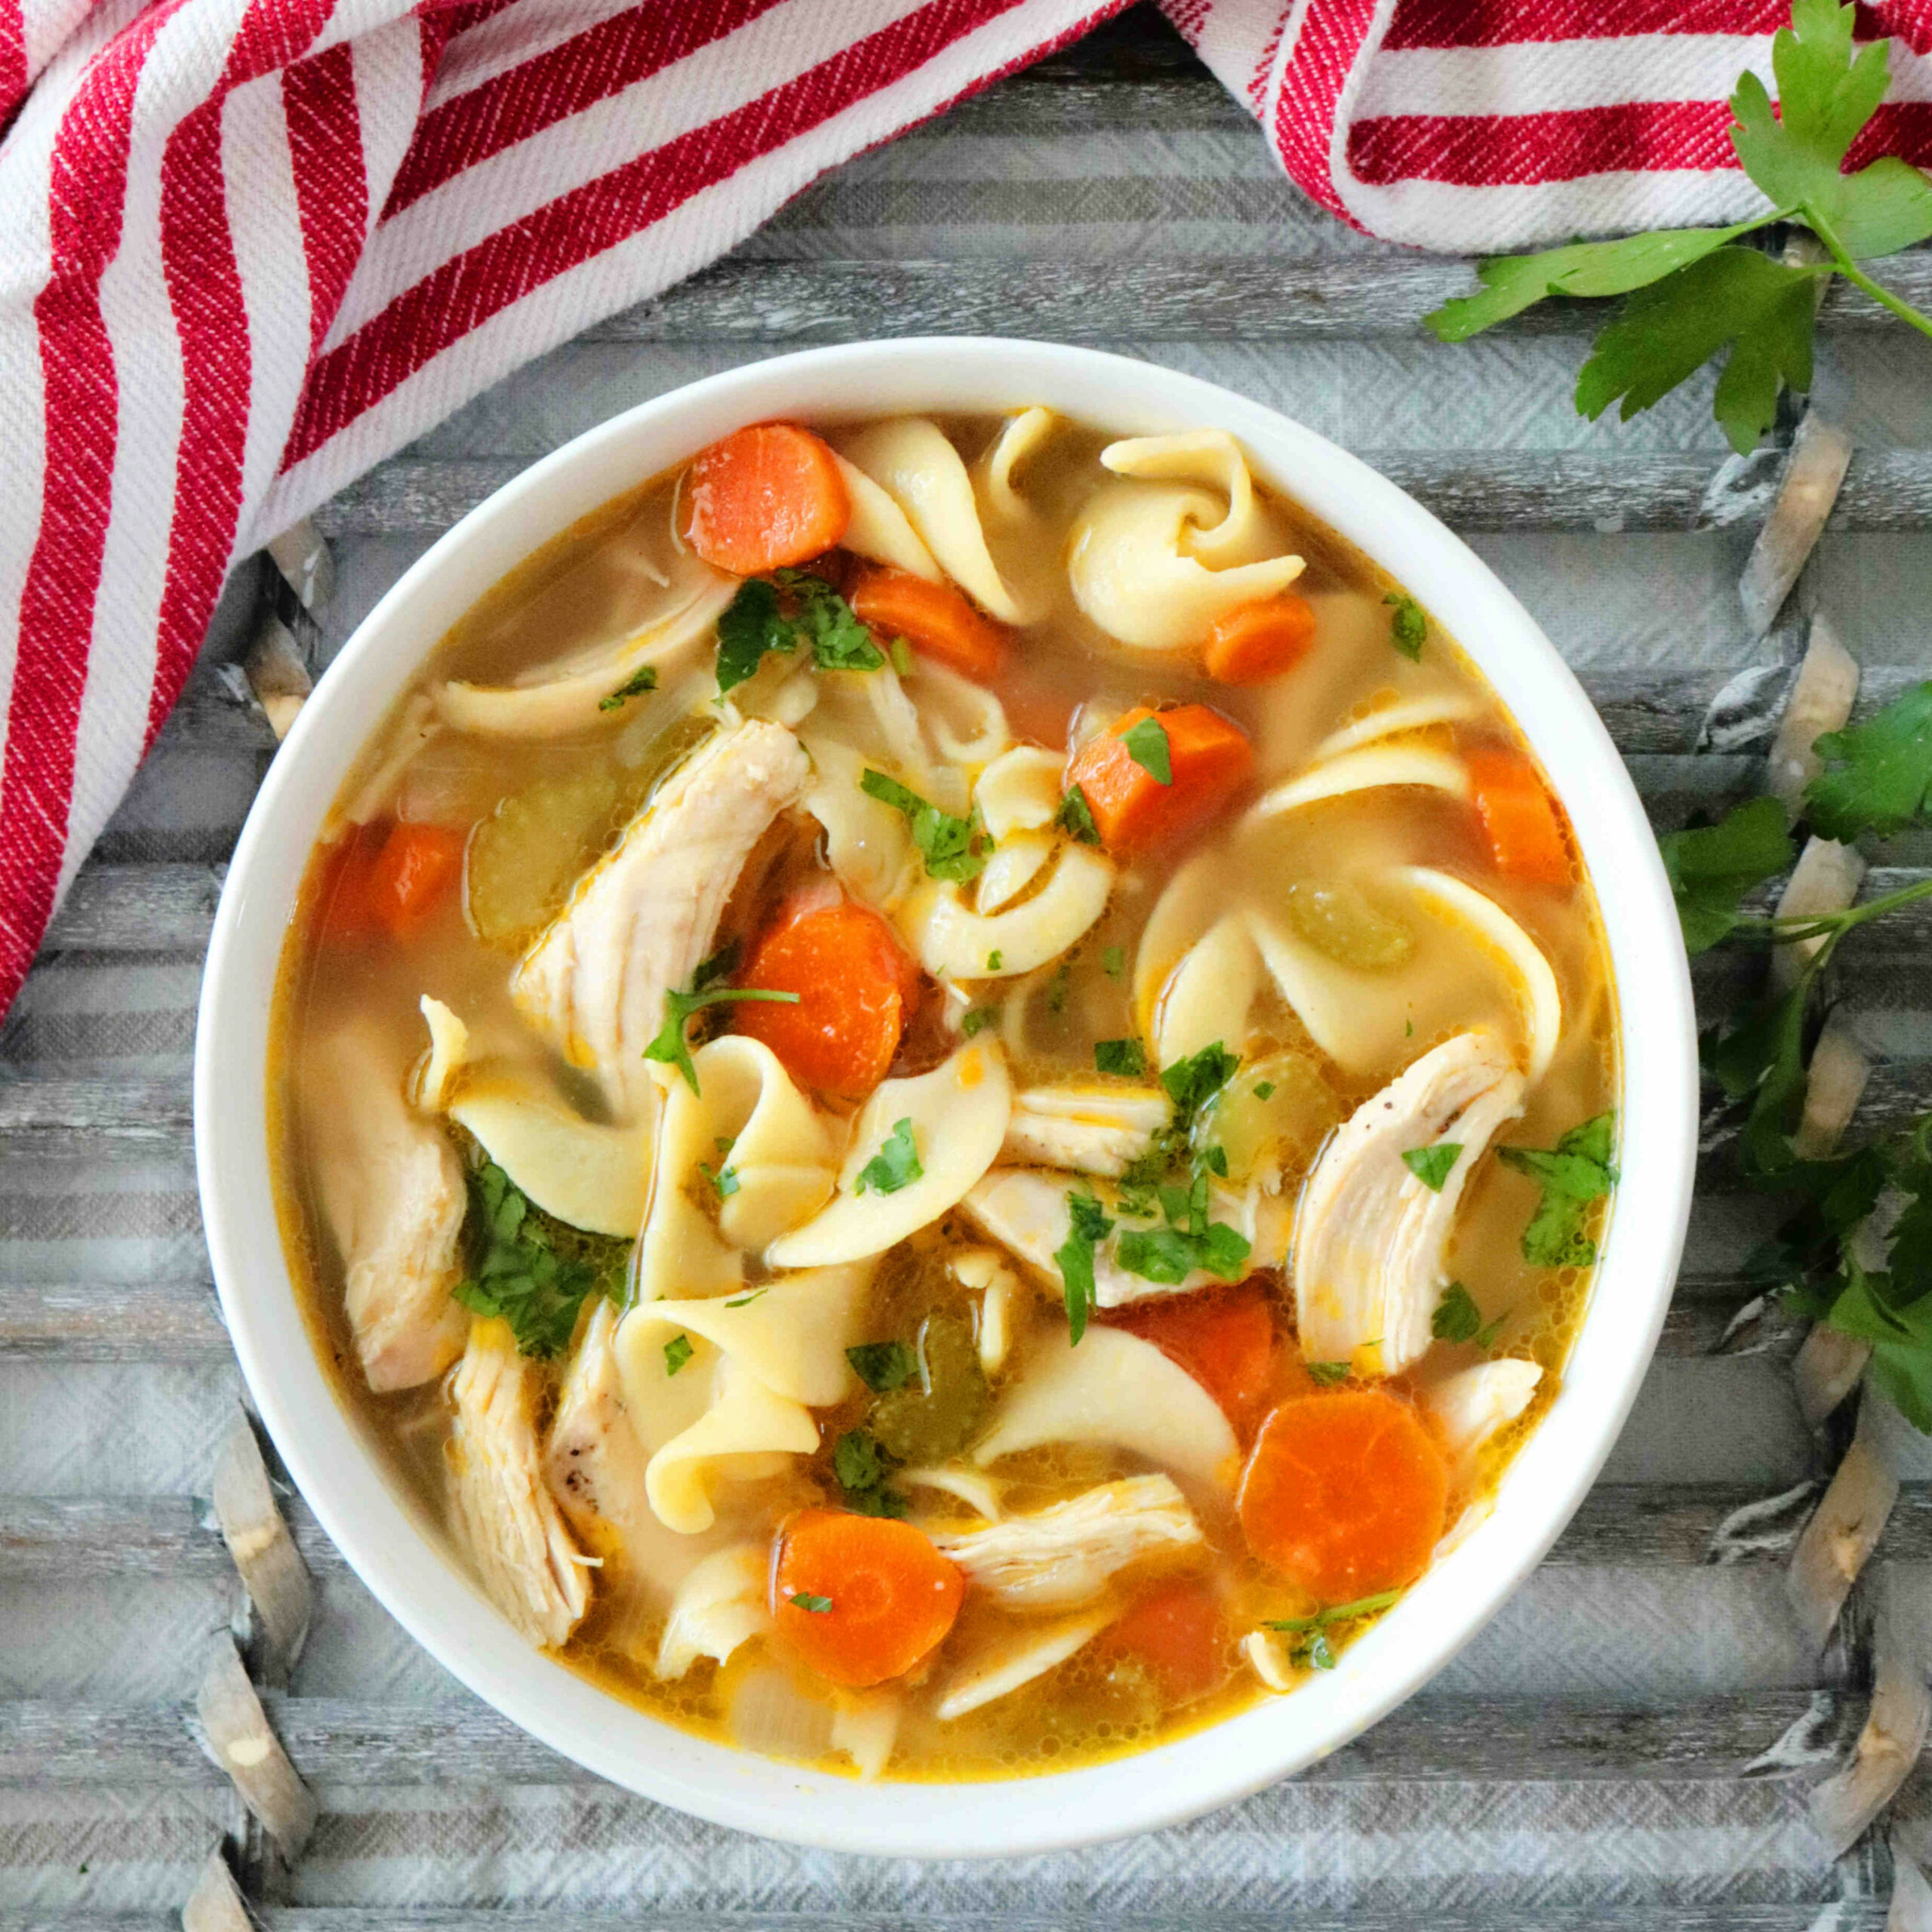 Homemade Chicken Noodle Soup - recipes homemade chicken noodle soup